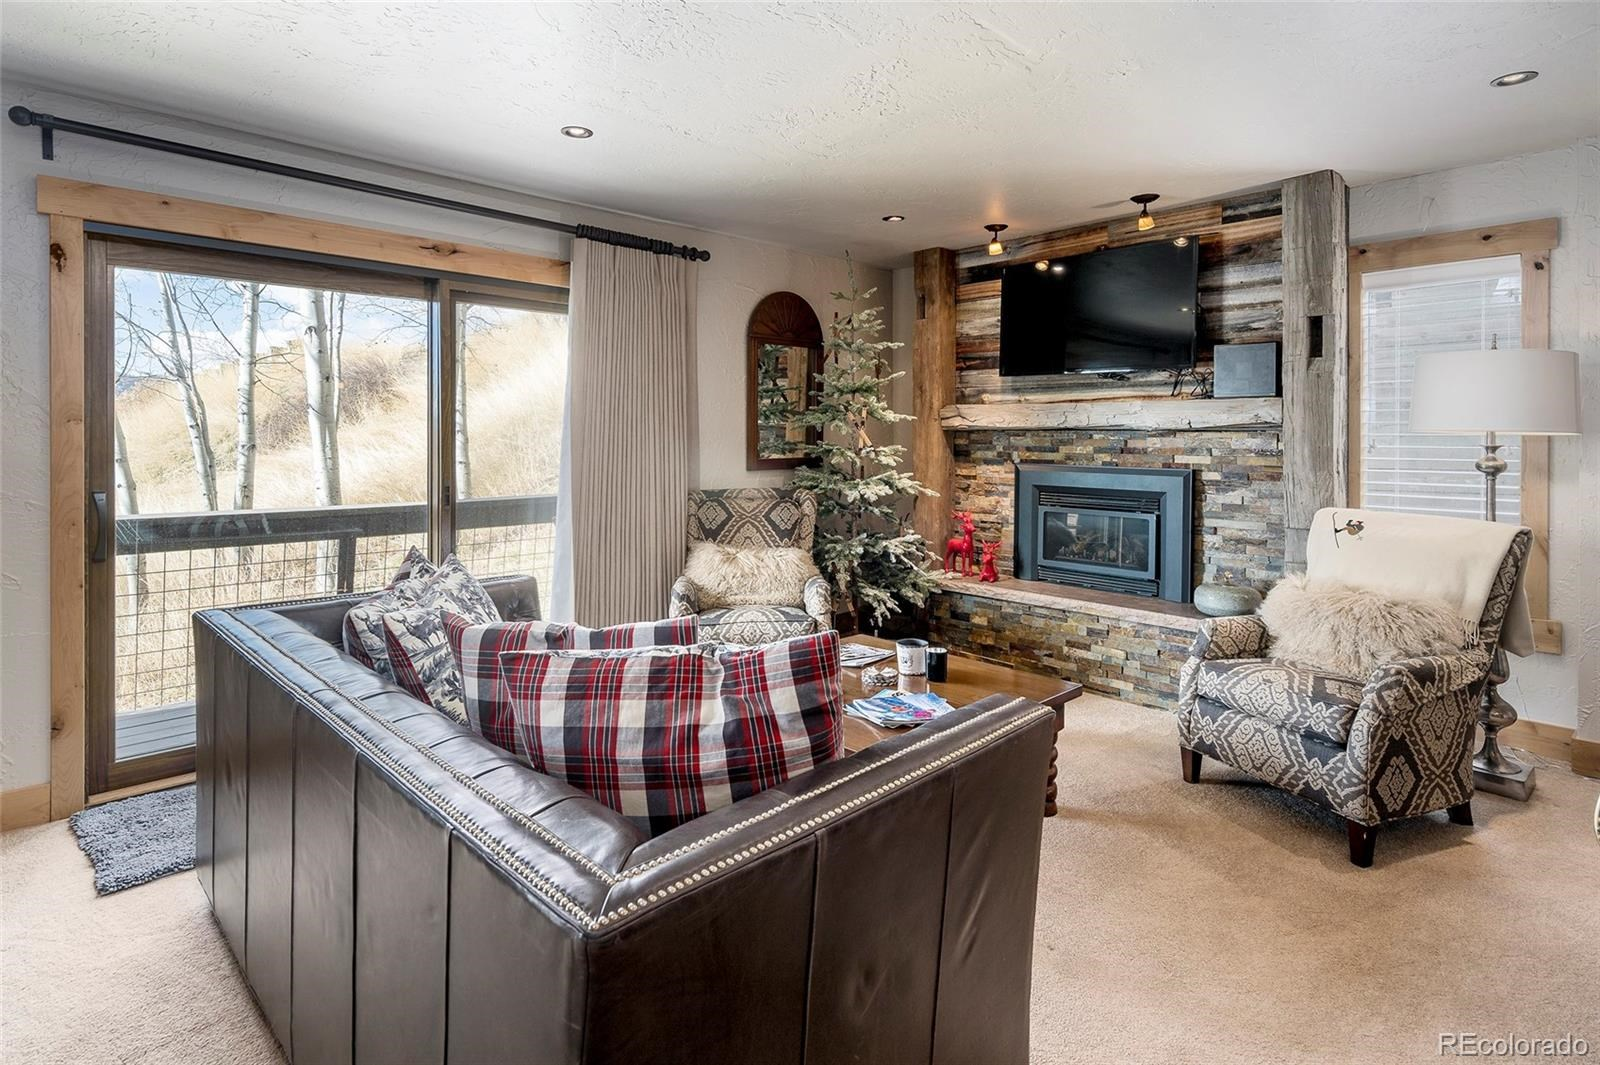 MLS# 9768021 - 2 - 2275 Storm Meadows Drive #45, Steamboat Springs, CO 80487